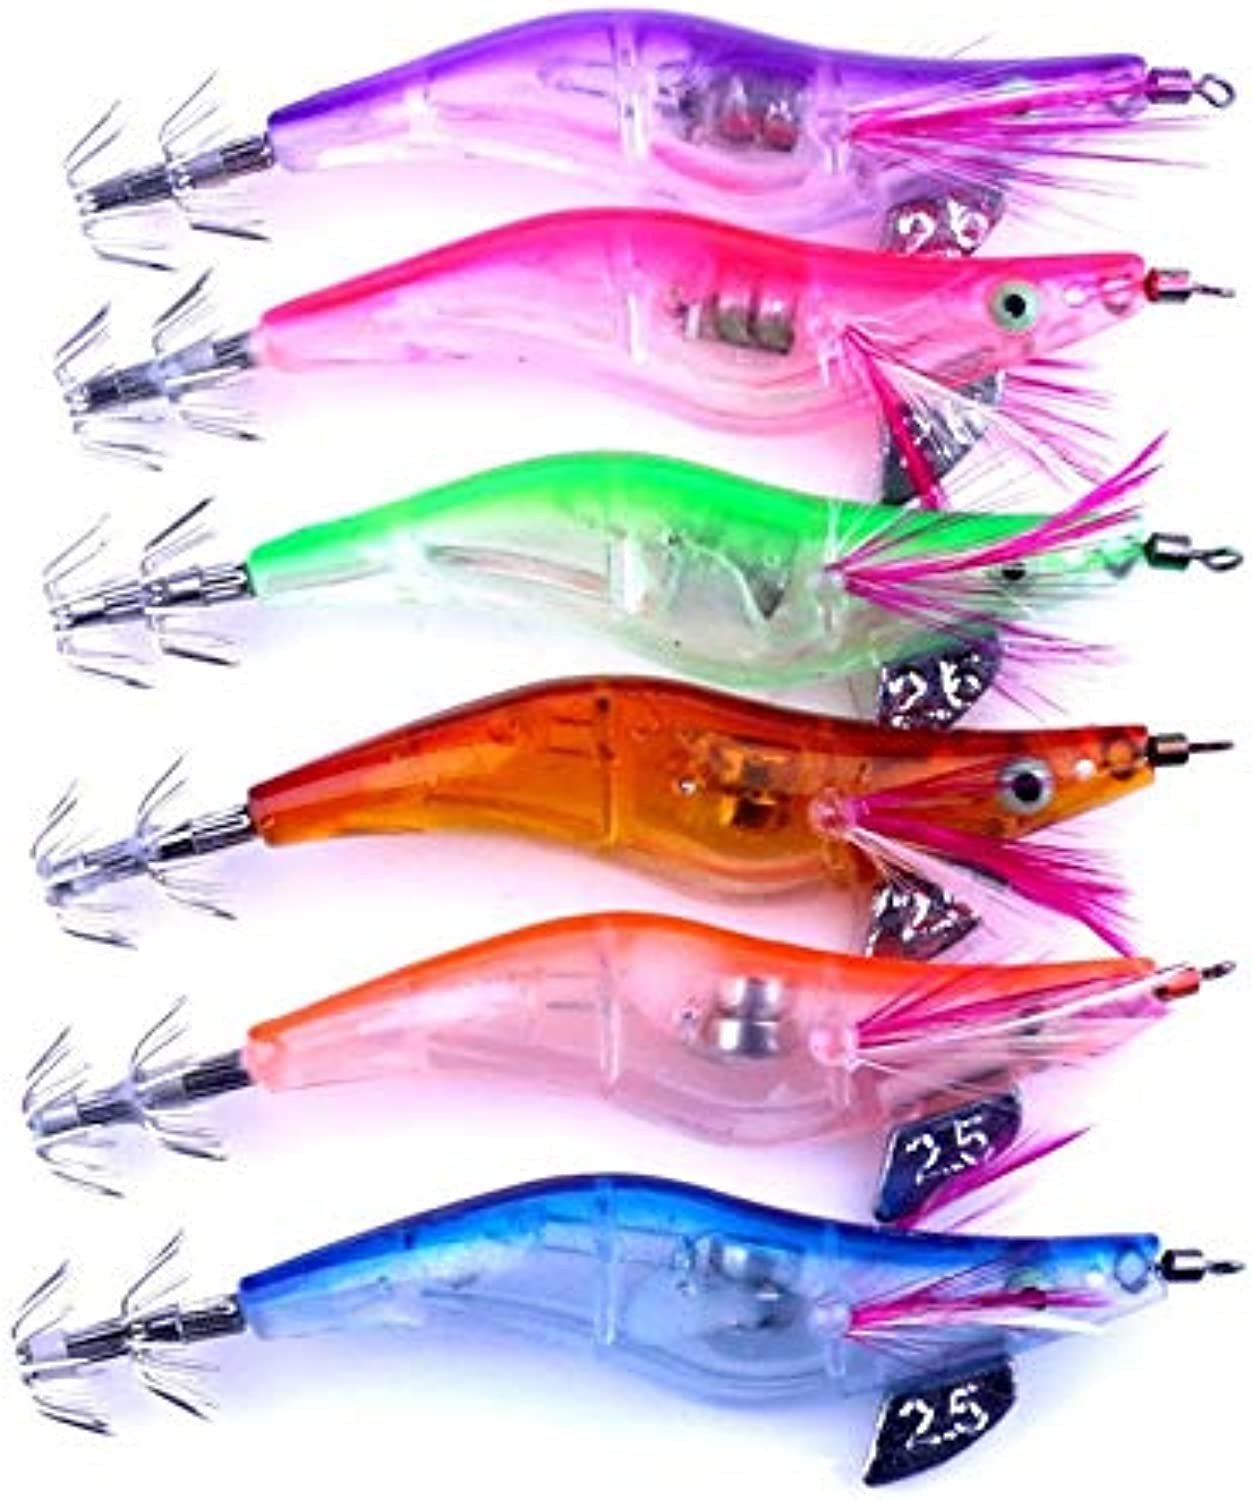 Generic 6pc LED Fishing Lure Electronic Light Prawns Curls Squid Jigs Bait Bass Lure Fish Equipment Lure Set  4AP18 Multi